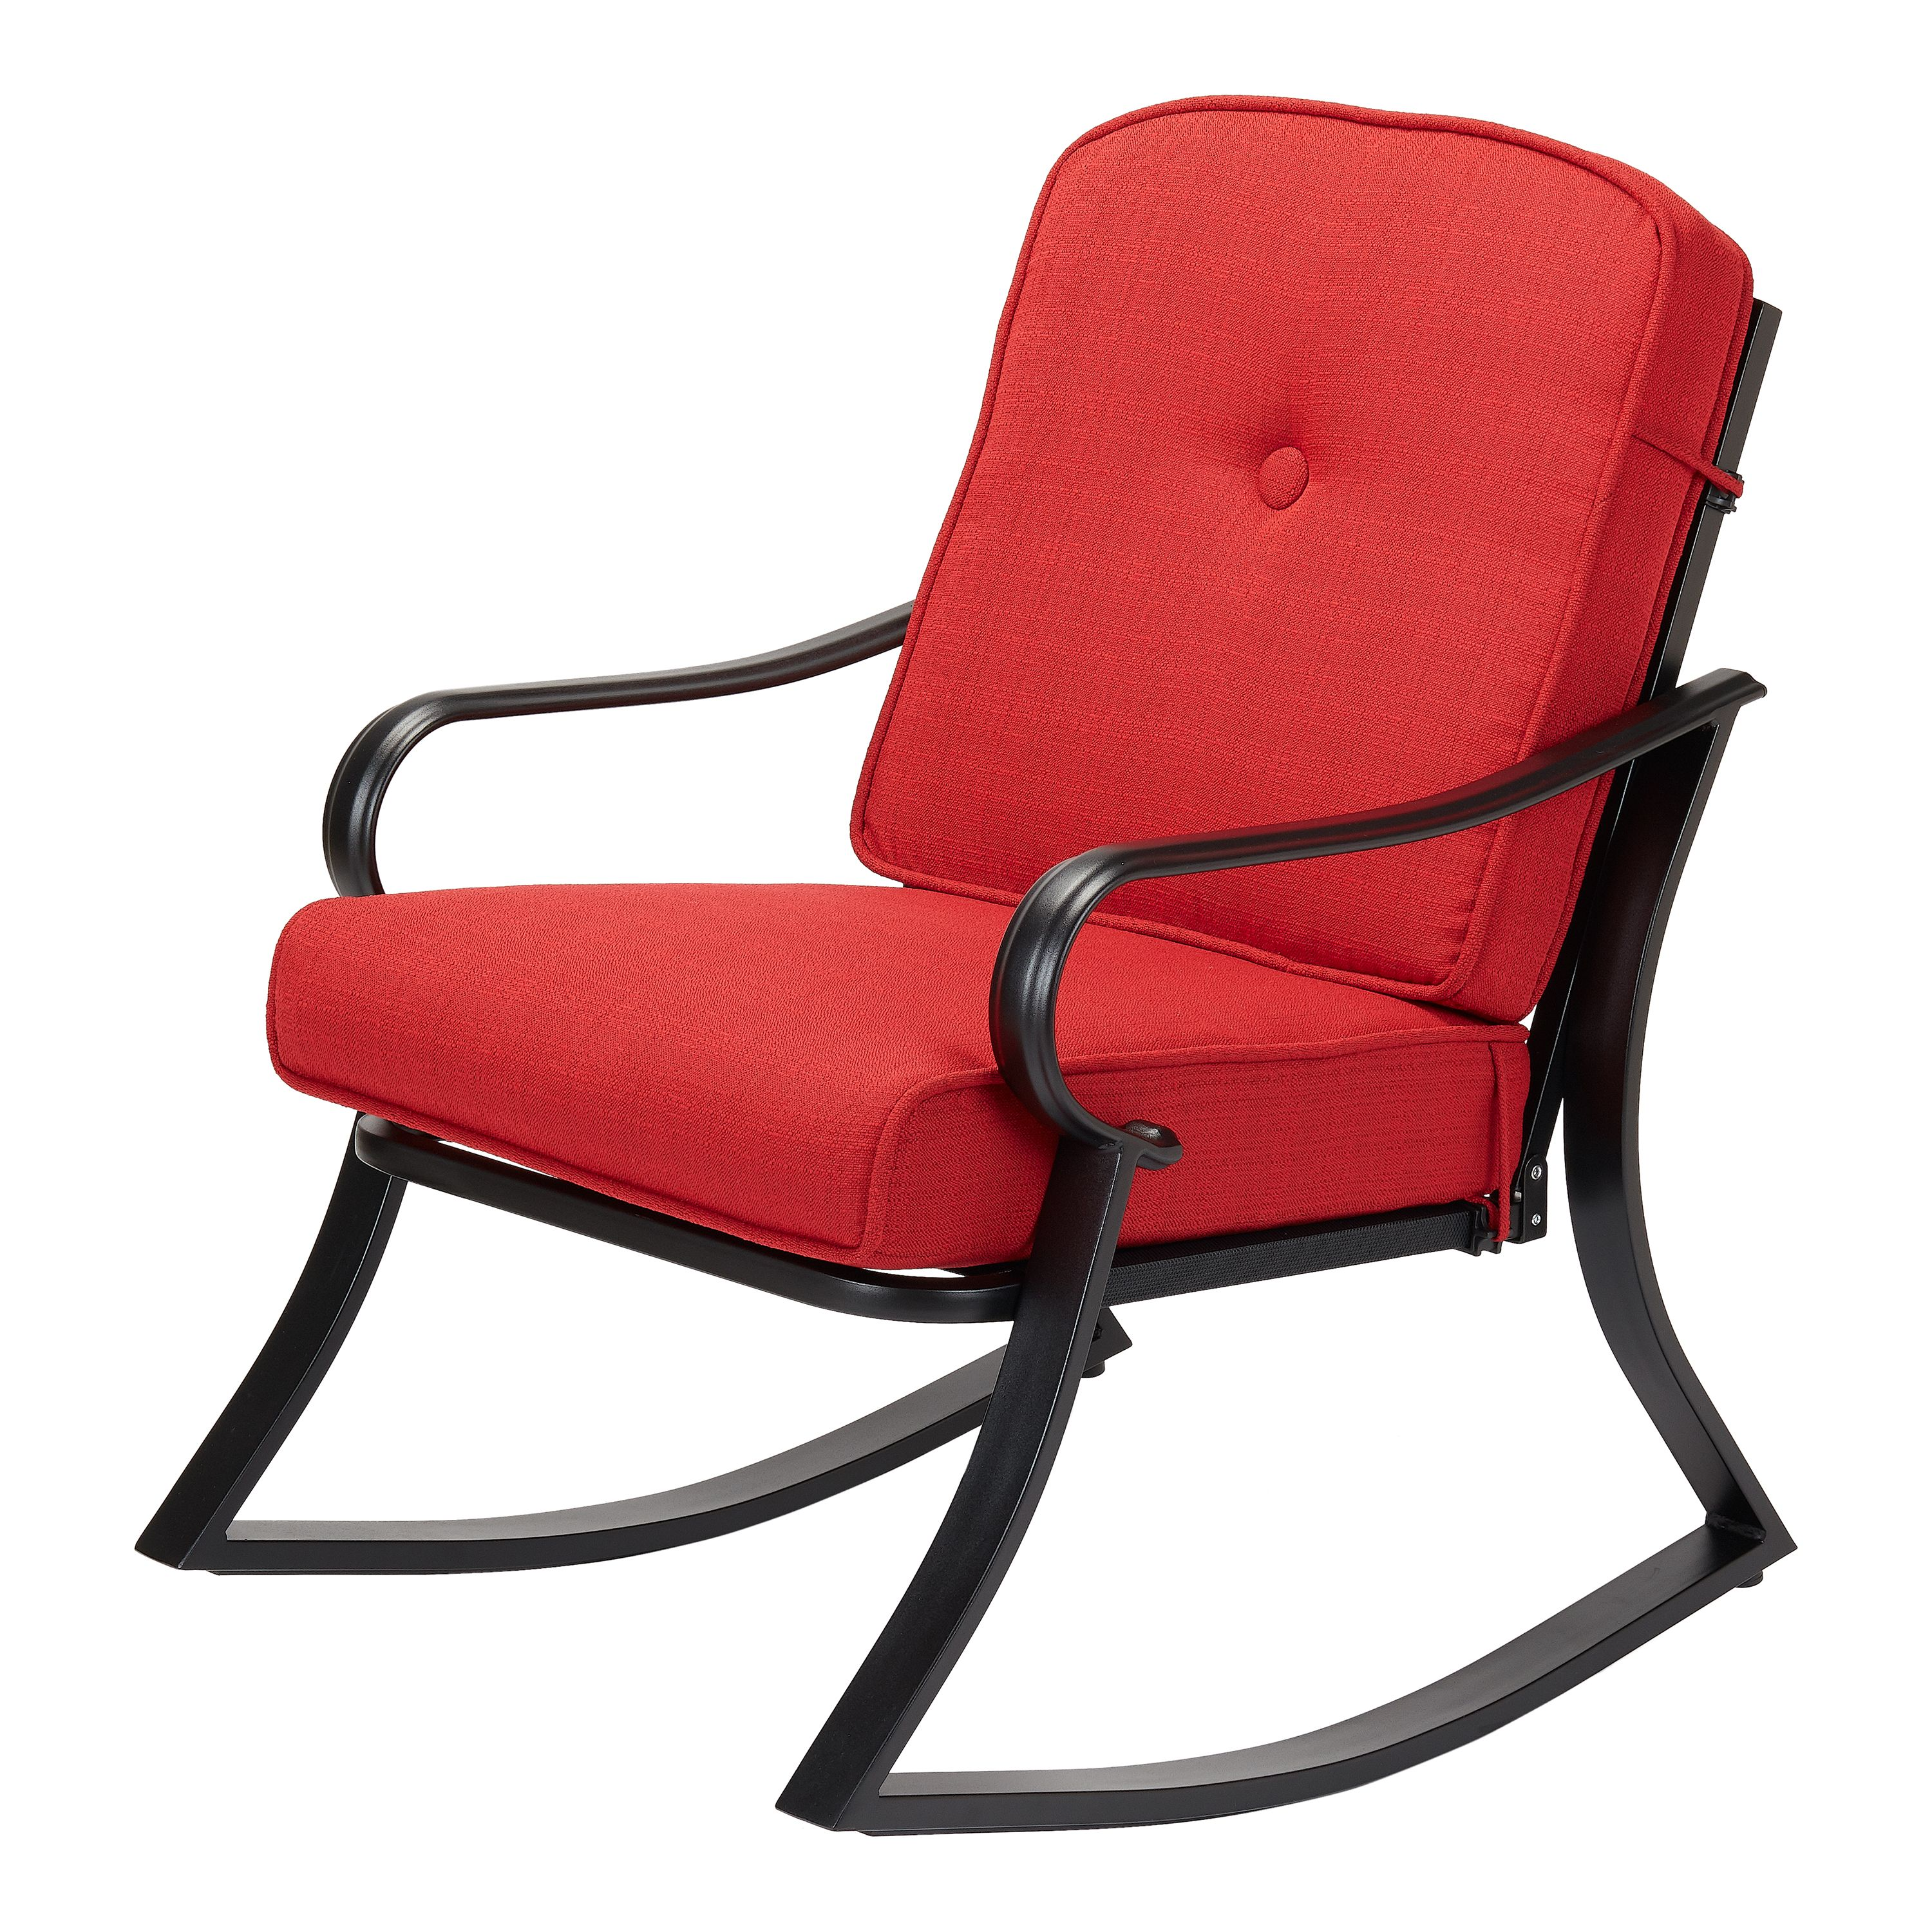 Mainstays Carson Creek Patio Rocking Chair with Brick Red Cushions